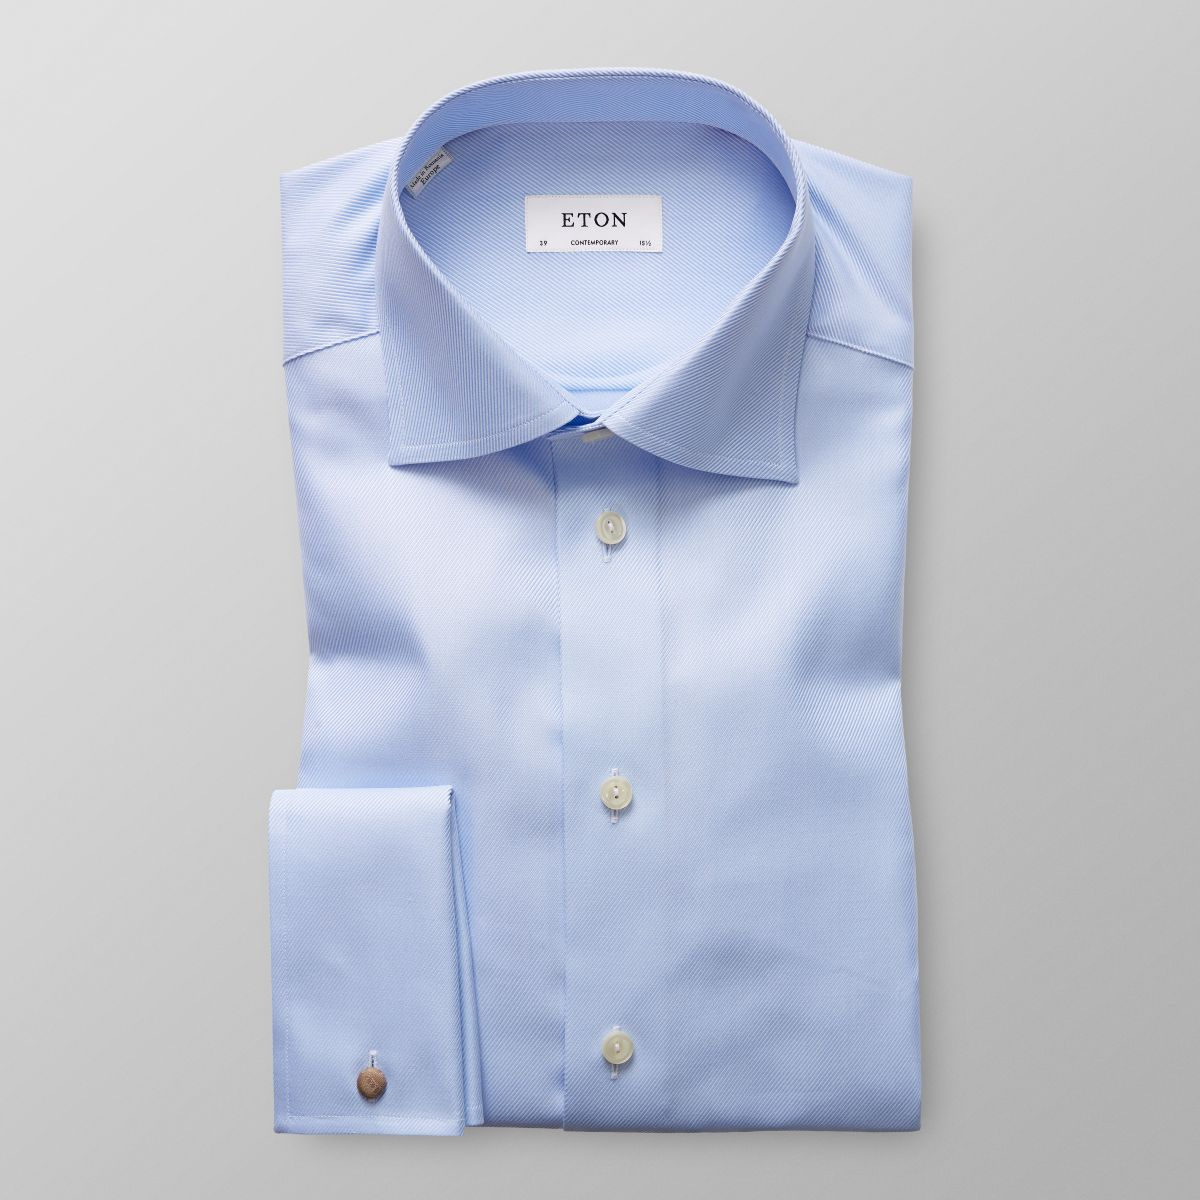 Footlocker Contemporary fit Light Blue Striped French Cuff Shirt Eton Cheap Price Outlet Sale 9nT7pGaXTv